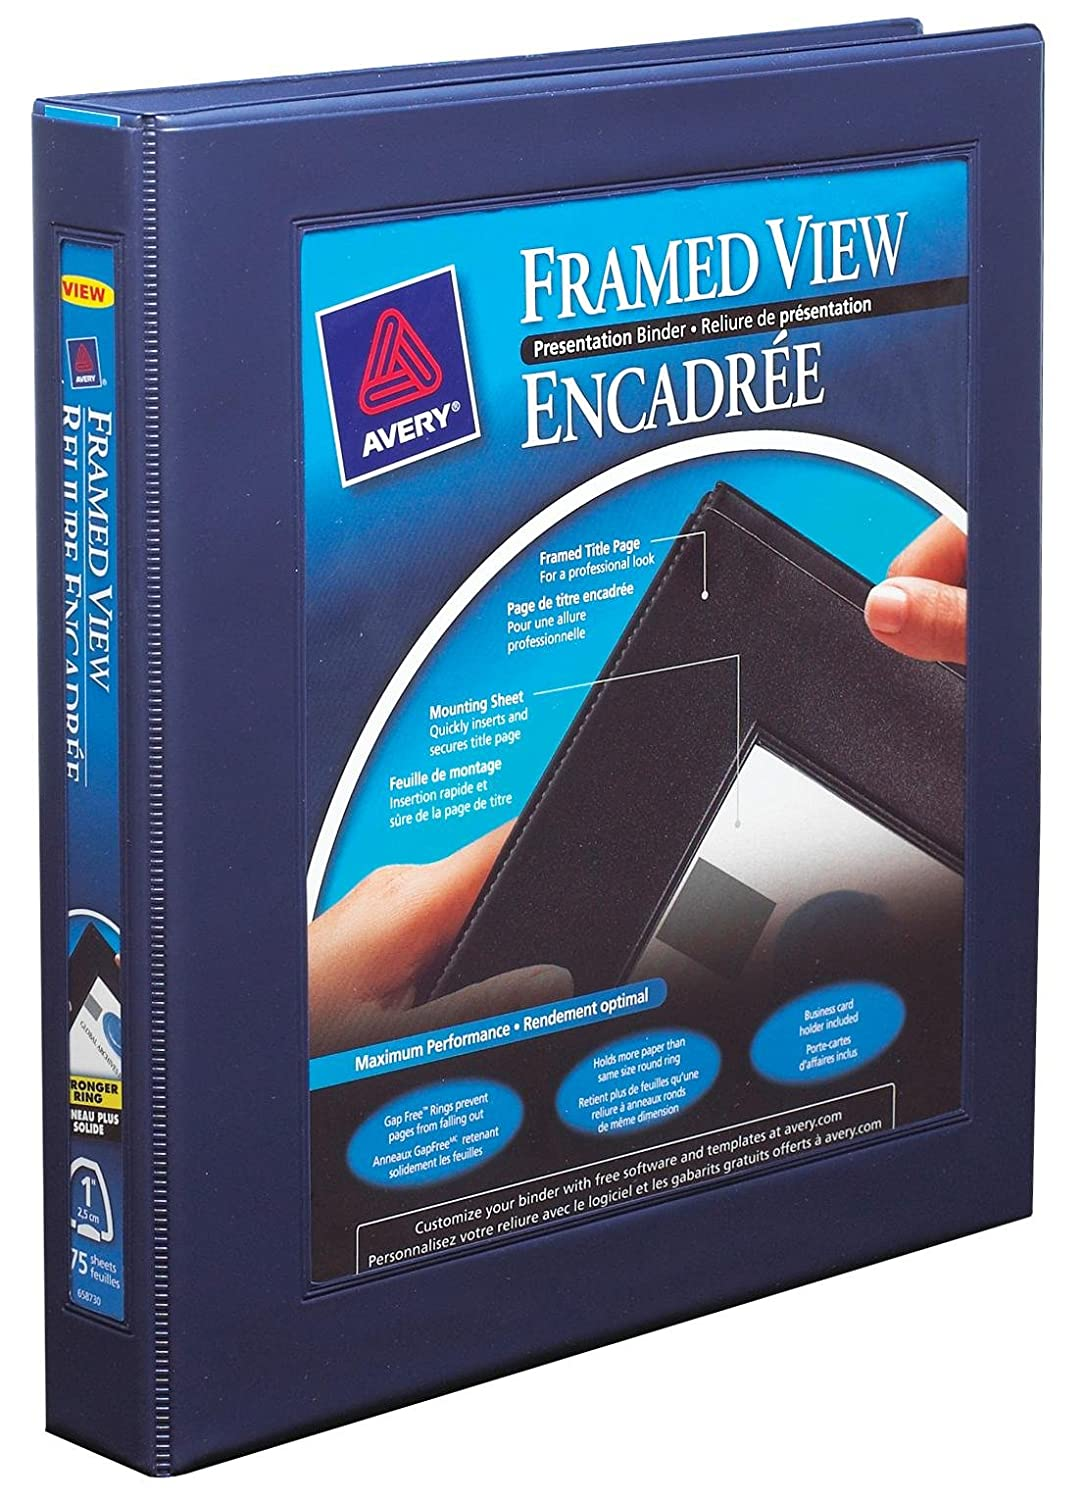 Black 2 Pockets 175 Sheet Capacity 68054 One Touch Locking D Rings 1 Inch Avery Framed View 3 Ring Binder